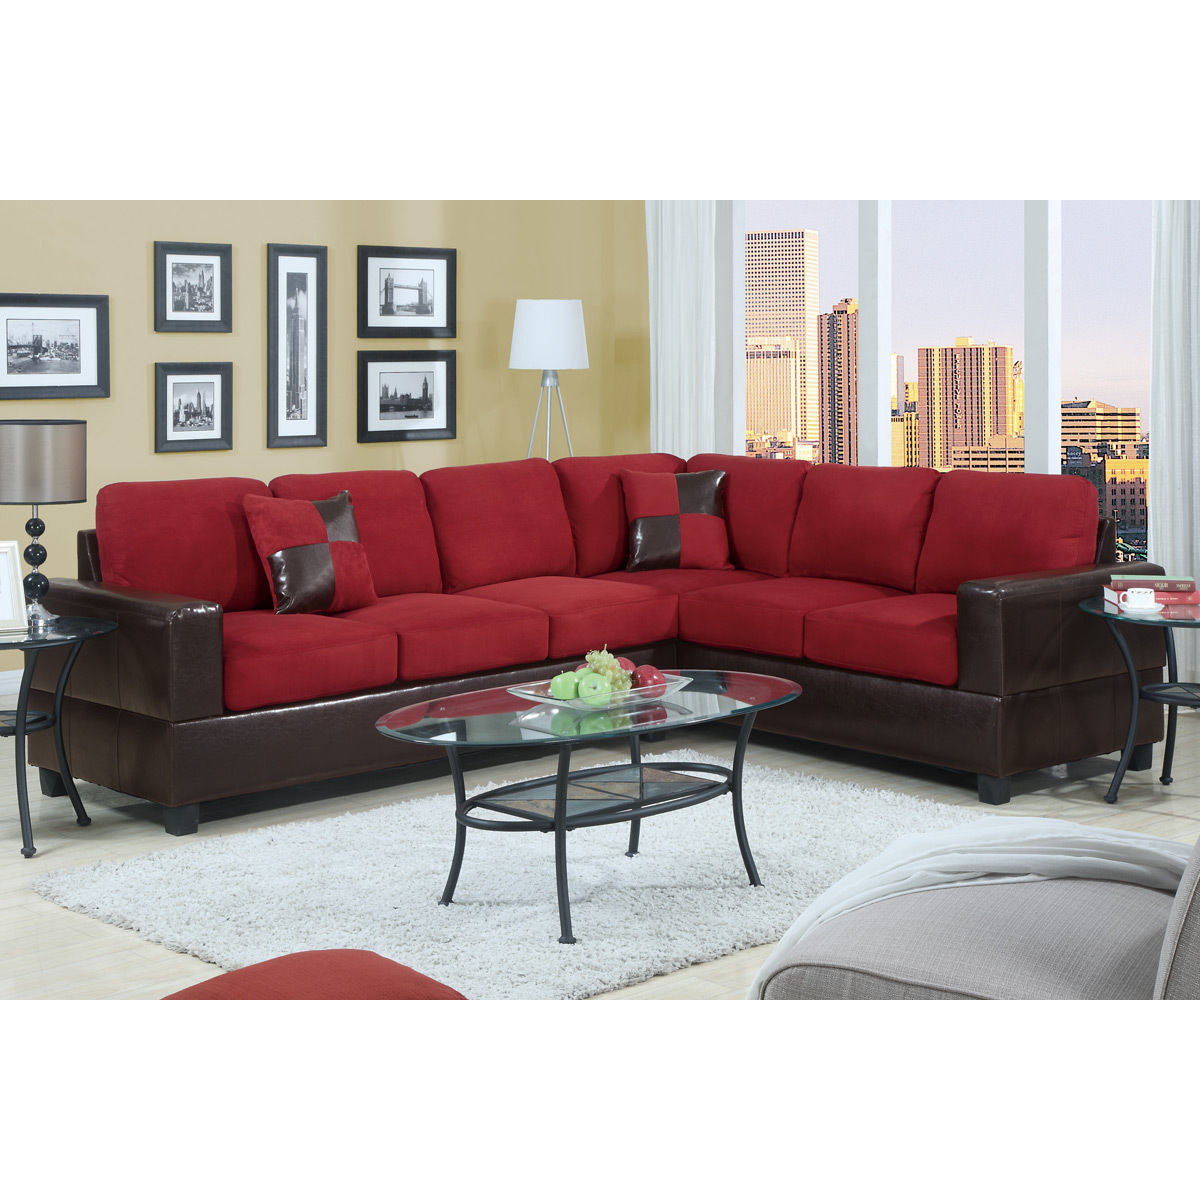 Shop 2 Piece Modern Microfiber And Faux Leather Sectional Sofa